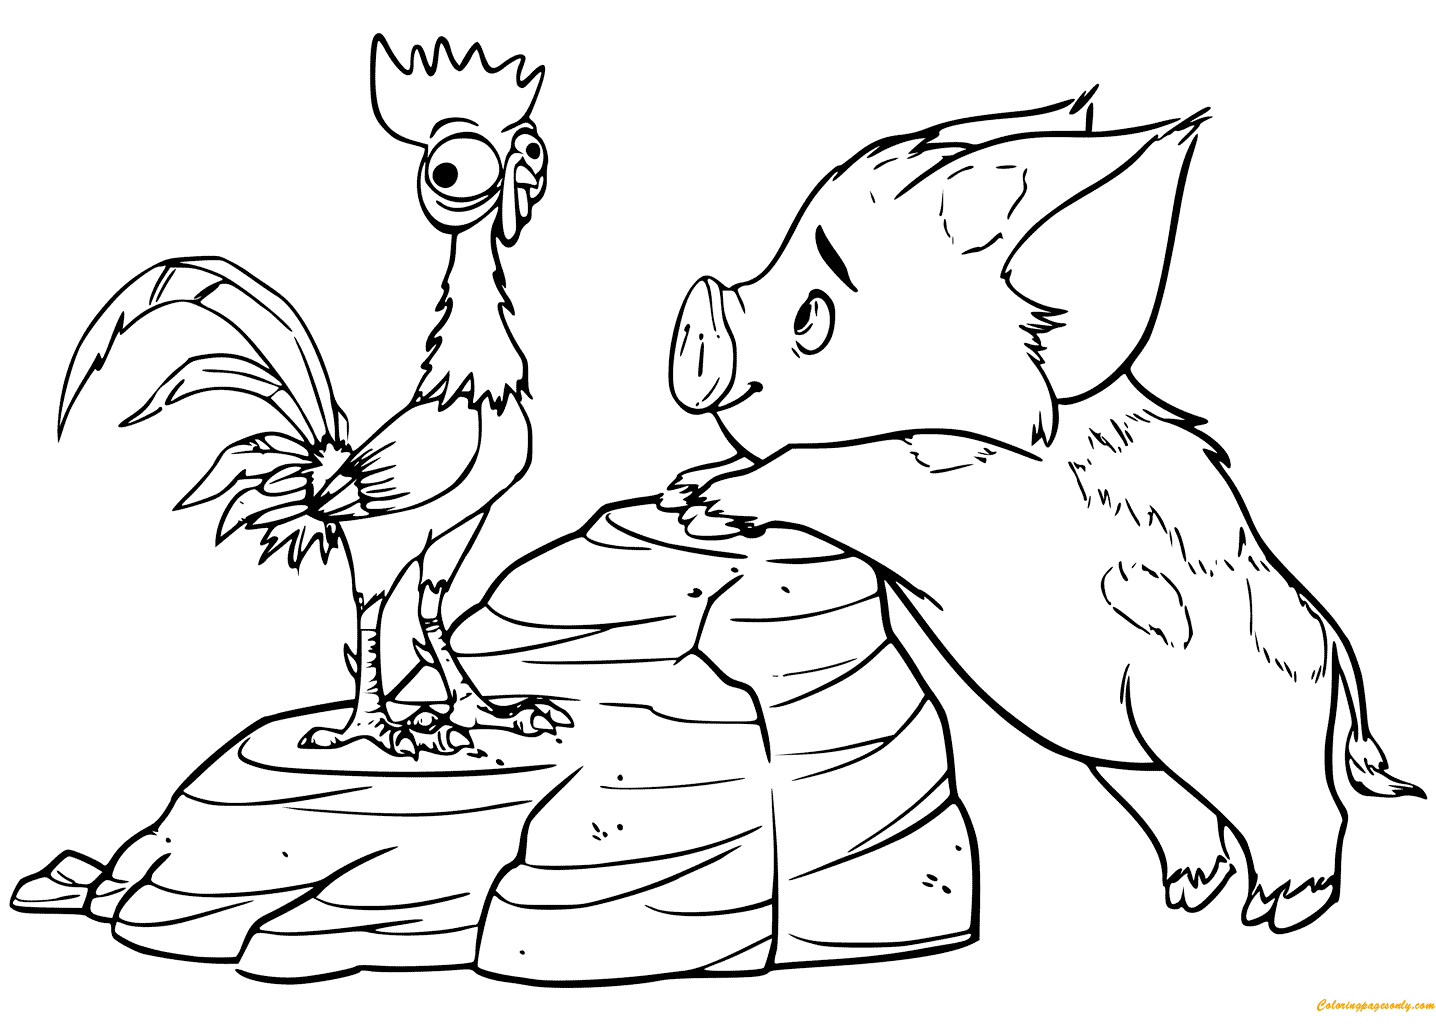 pig from moana coloring page the heihei rooster on the pig pua back moana coloring pig coloring from page moana